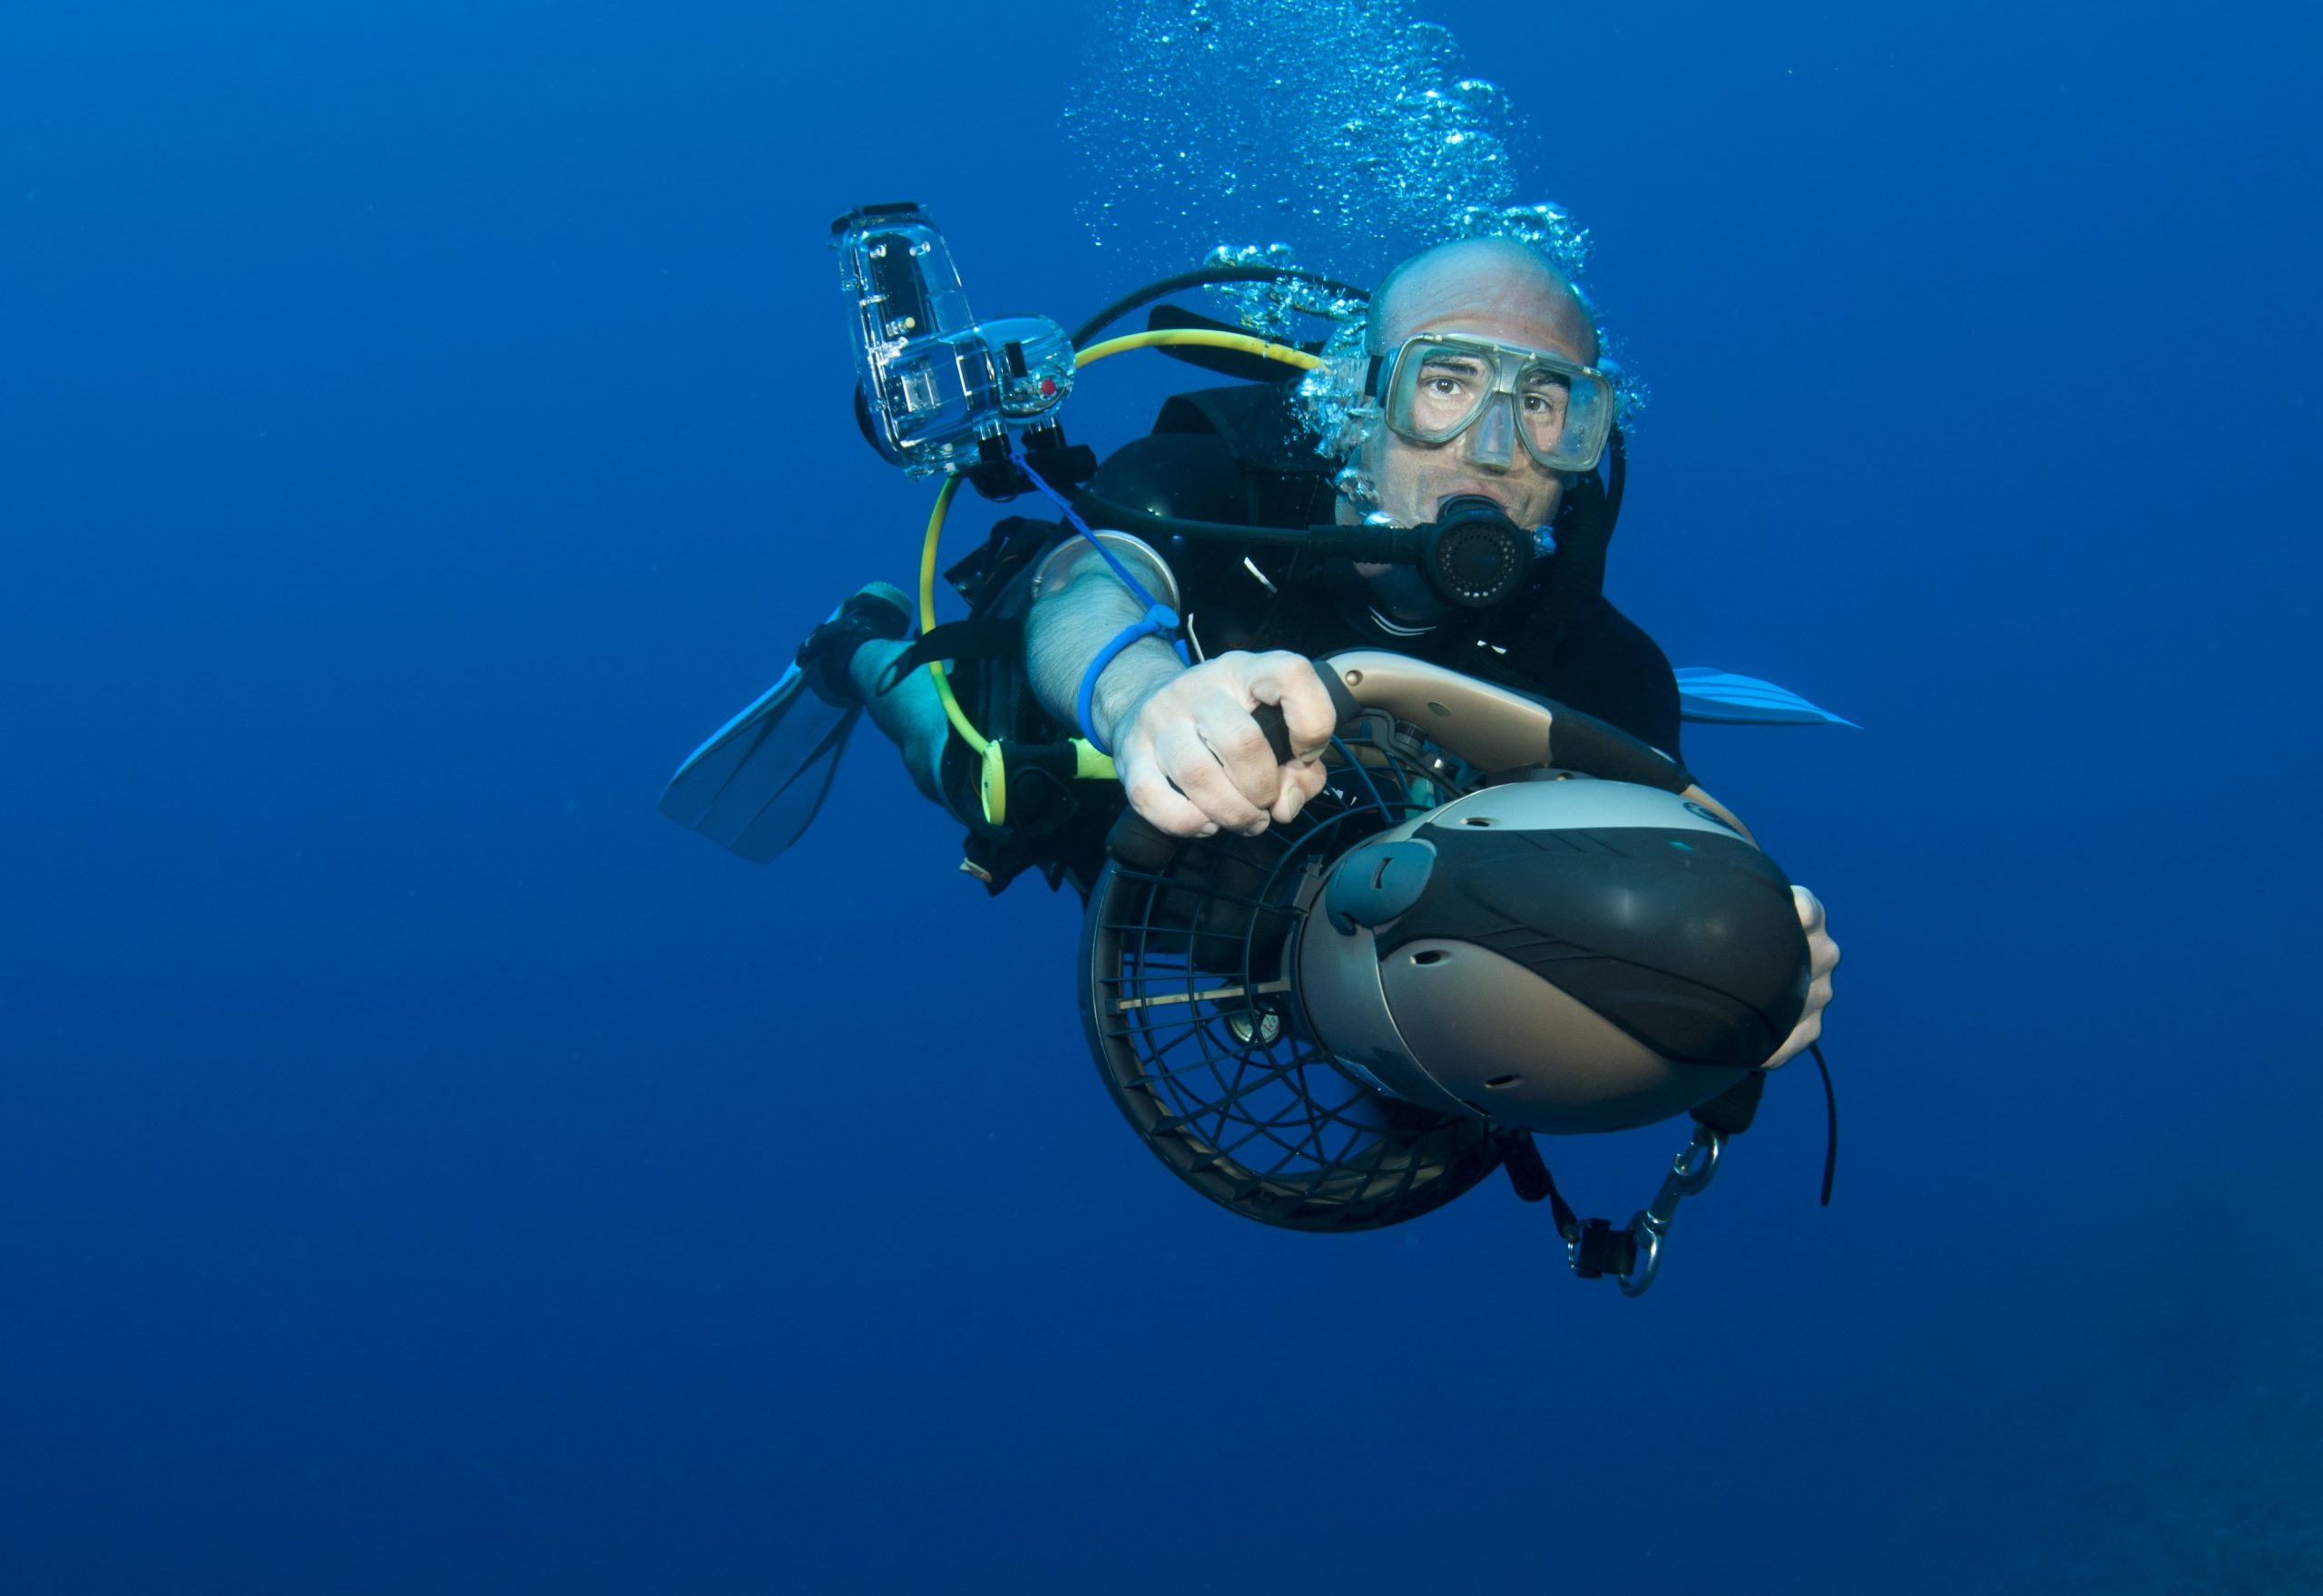 underwater diver scooter propulsion scuba vehicle scooters vehicles sea diving equipment deep reef advice getting creative electric deeperblue plays thruster